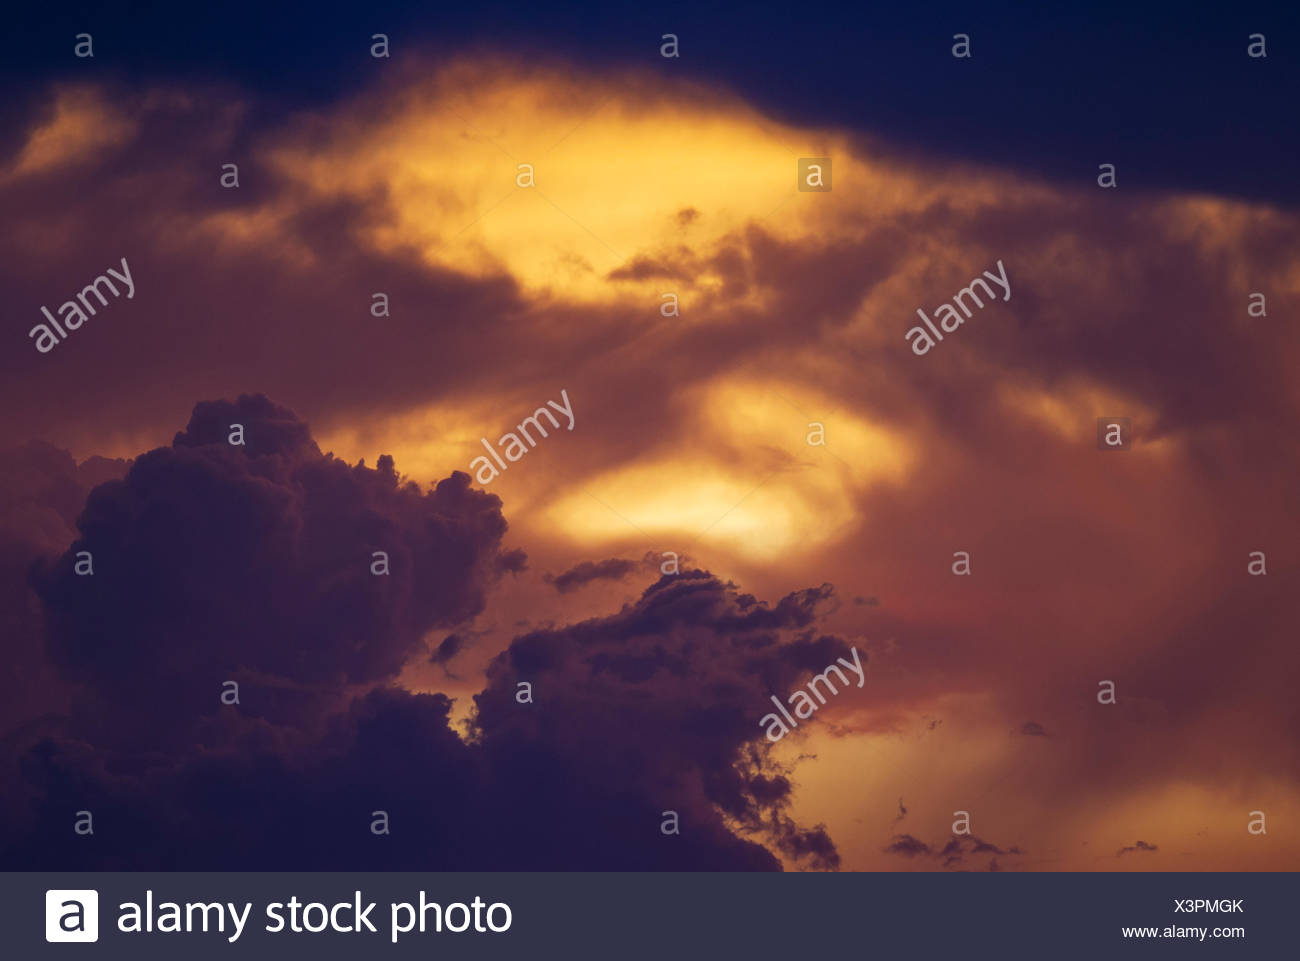 Cumulonimbus clouds in the evening, rainy season, Kalahari Desert, Kgalagadi Transfrontier Park, South Africa - Stock Image